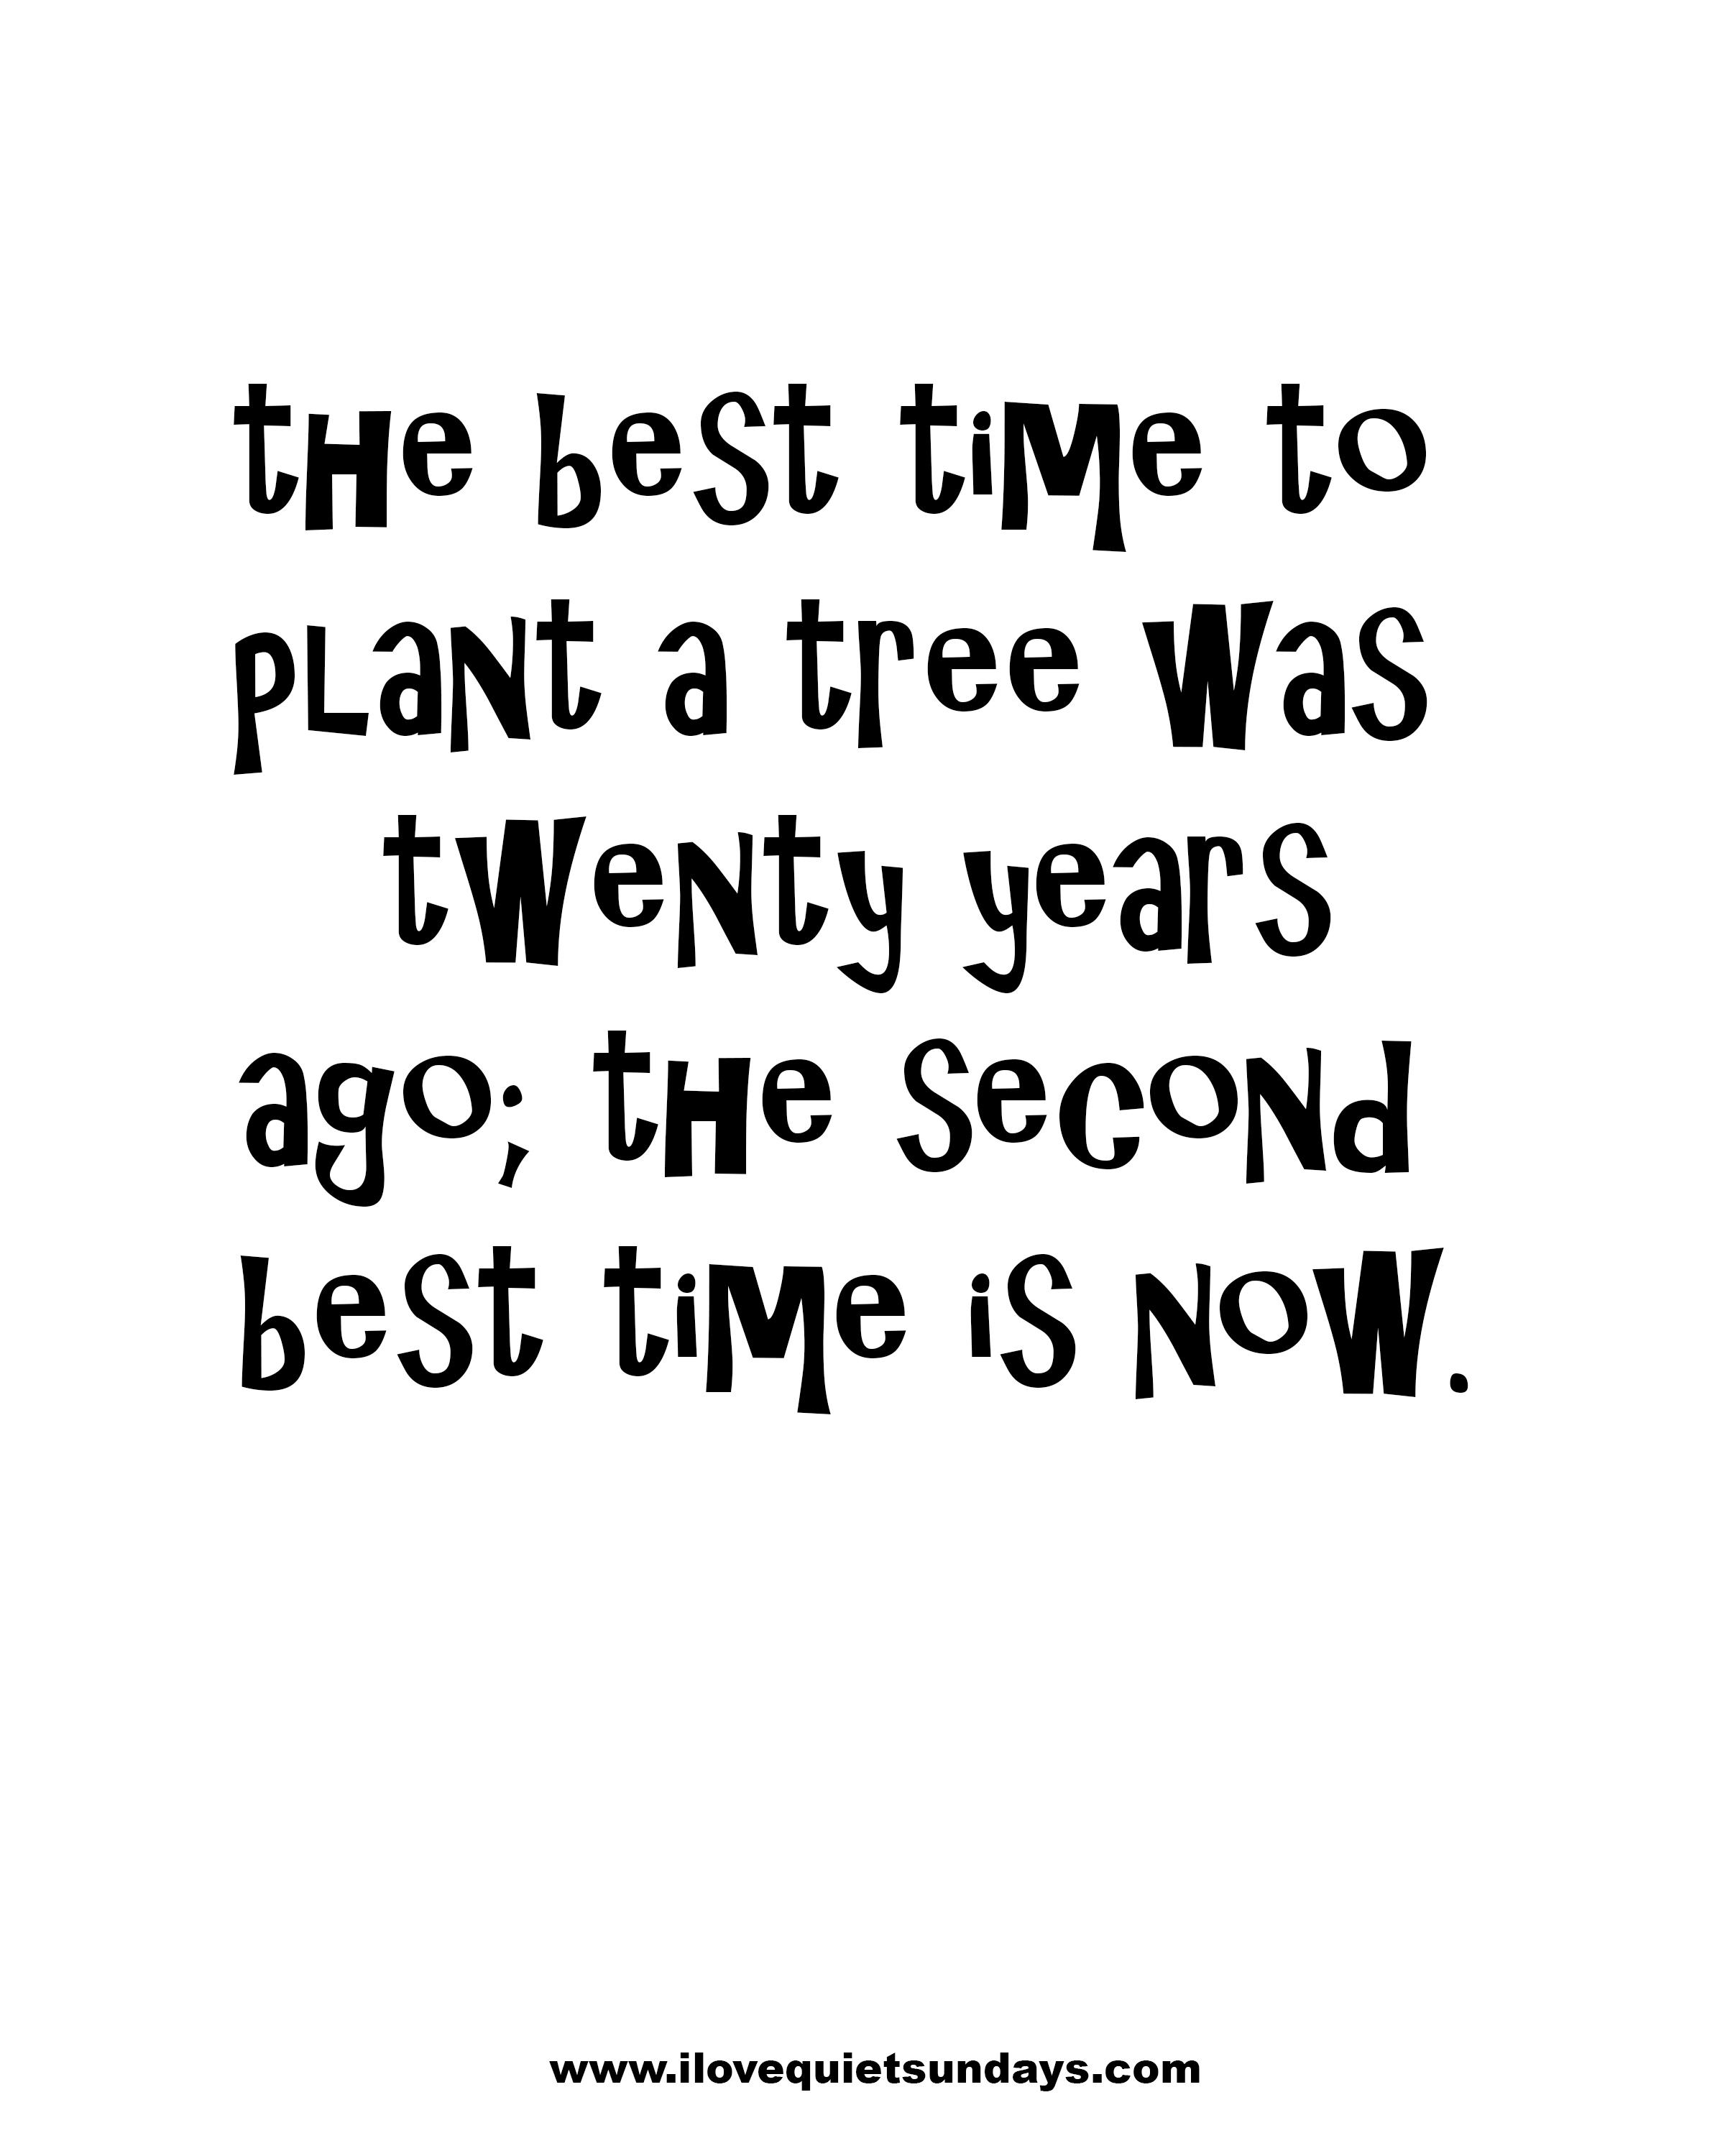 [image] The best time to plant a tree…